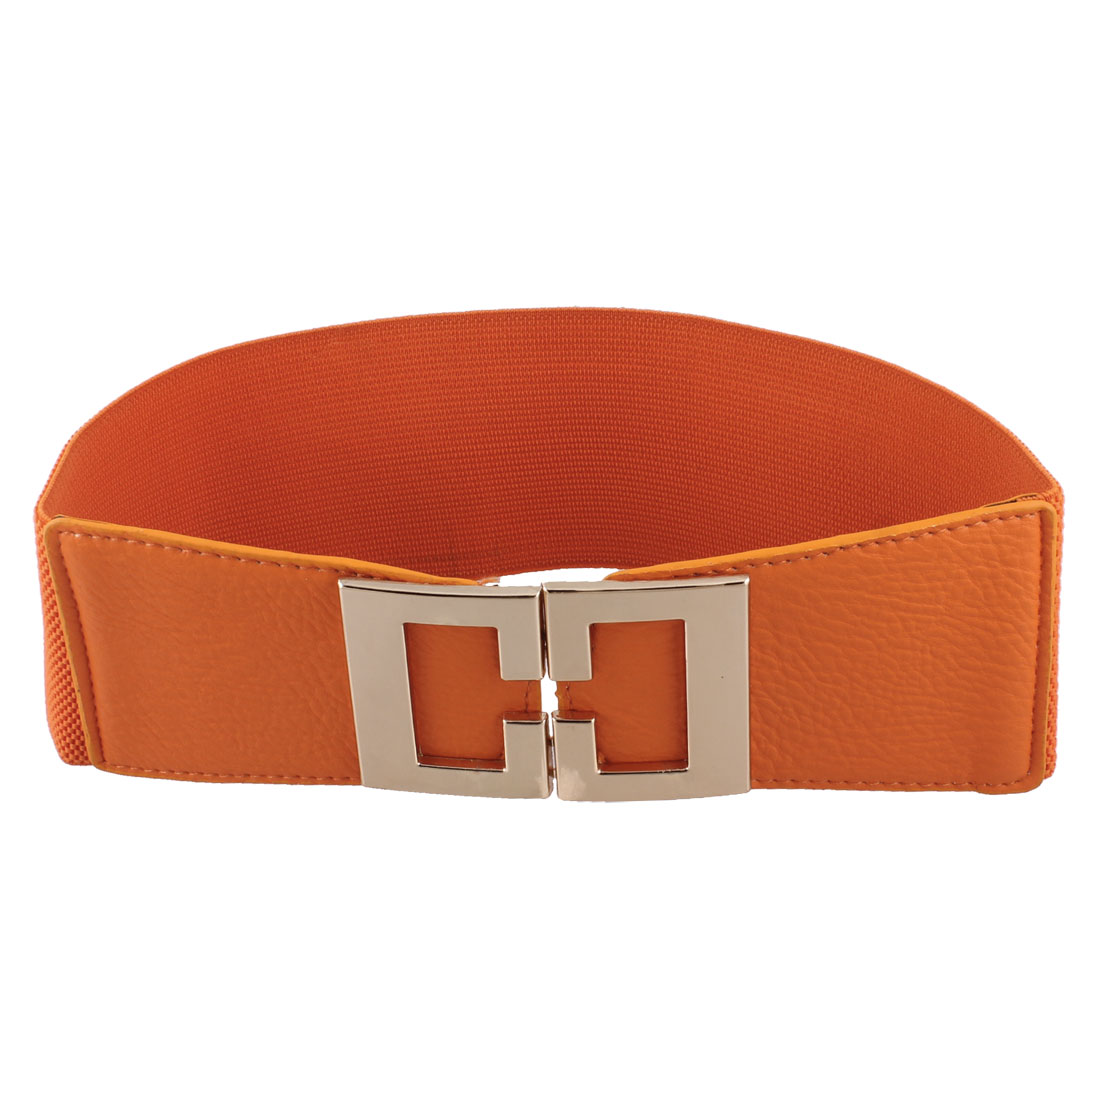 Lady Hook Buckle 8cm Width Stretchy Orange Waist Belt Waistband Skirt Corset Band